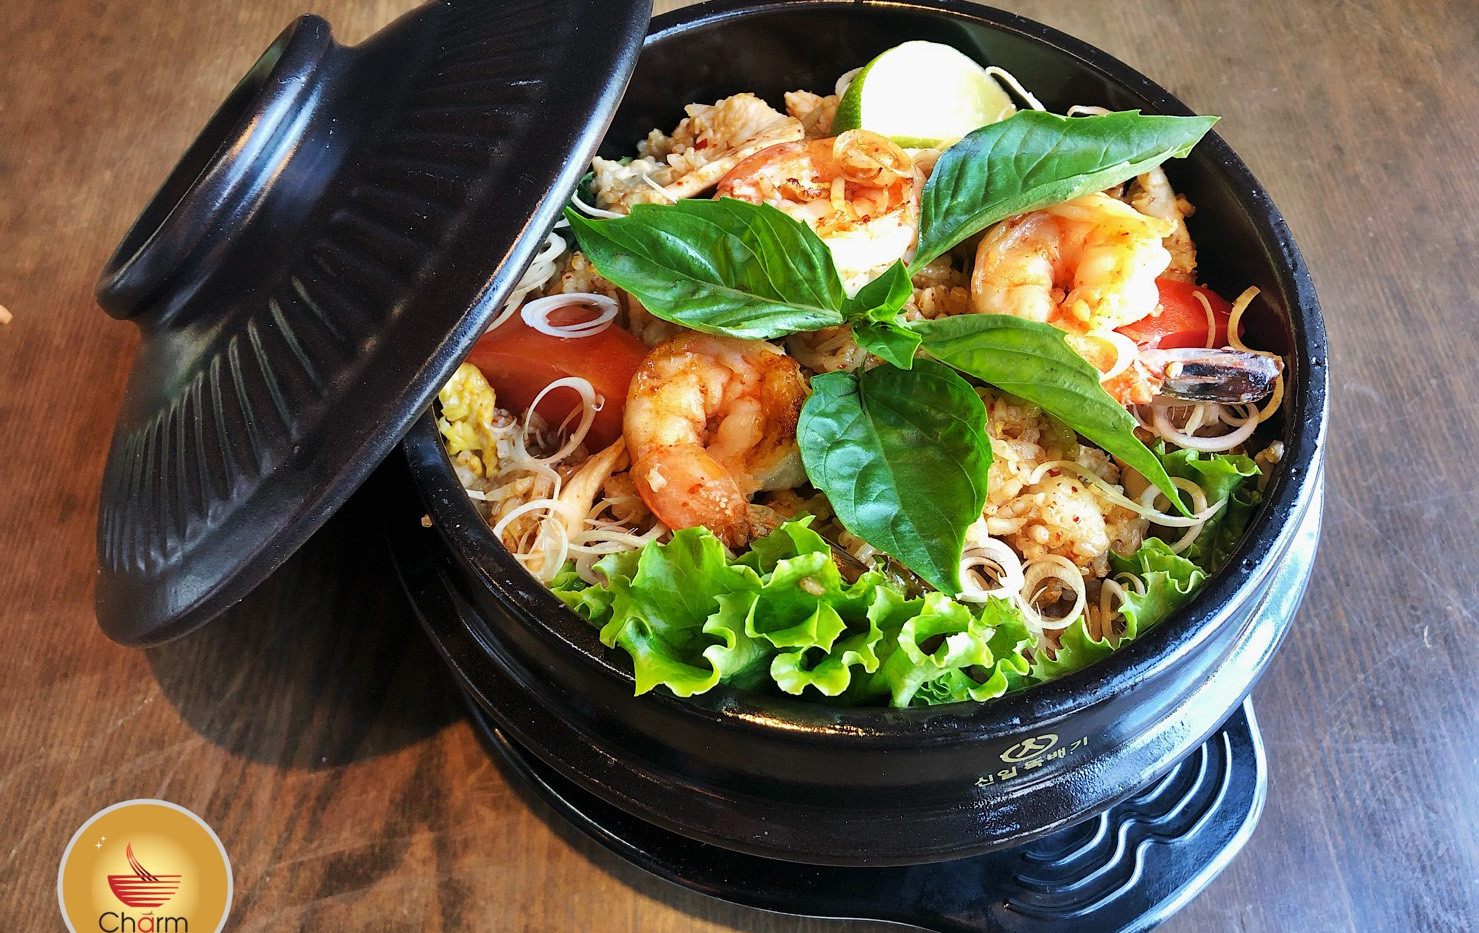 Charm Thai Fried Rice